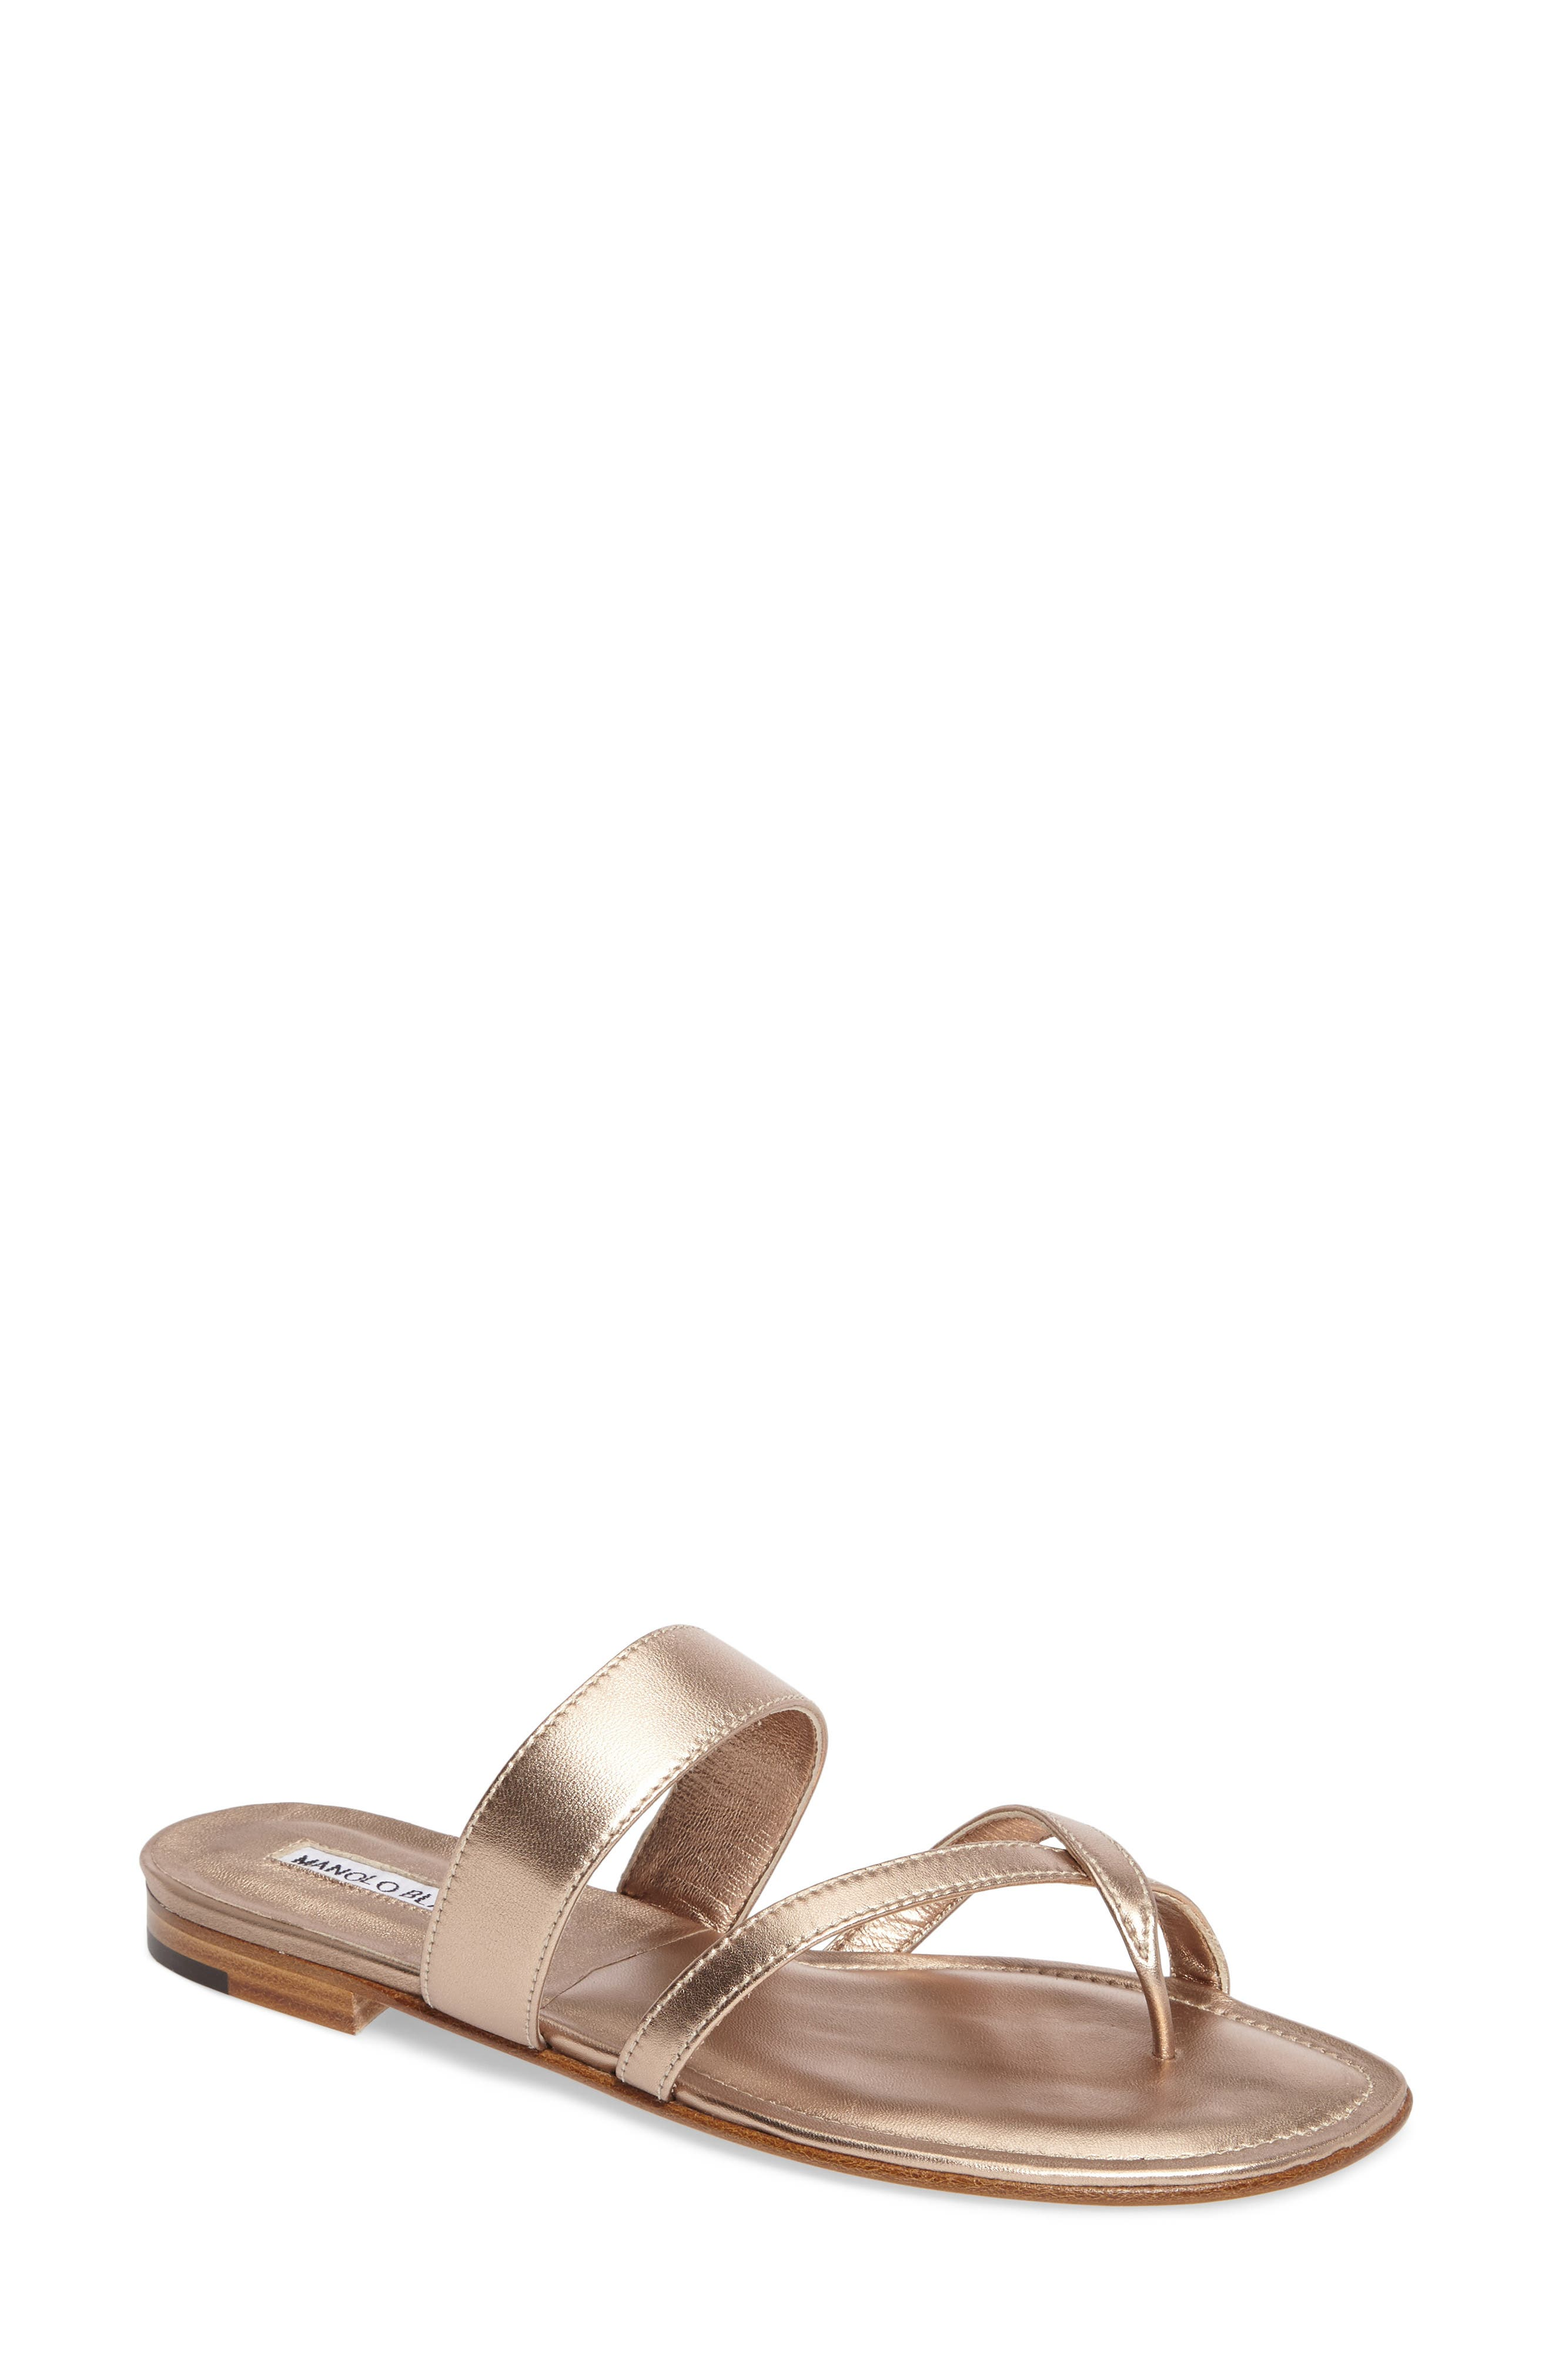 Manolo Blahnik Slide Sandal (Women)